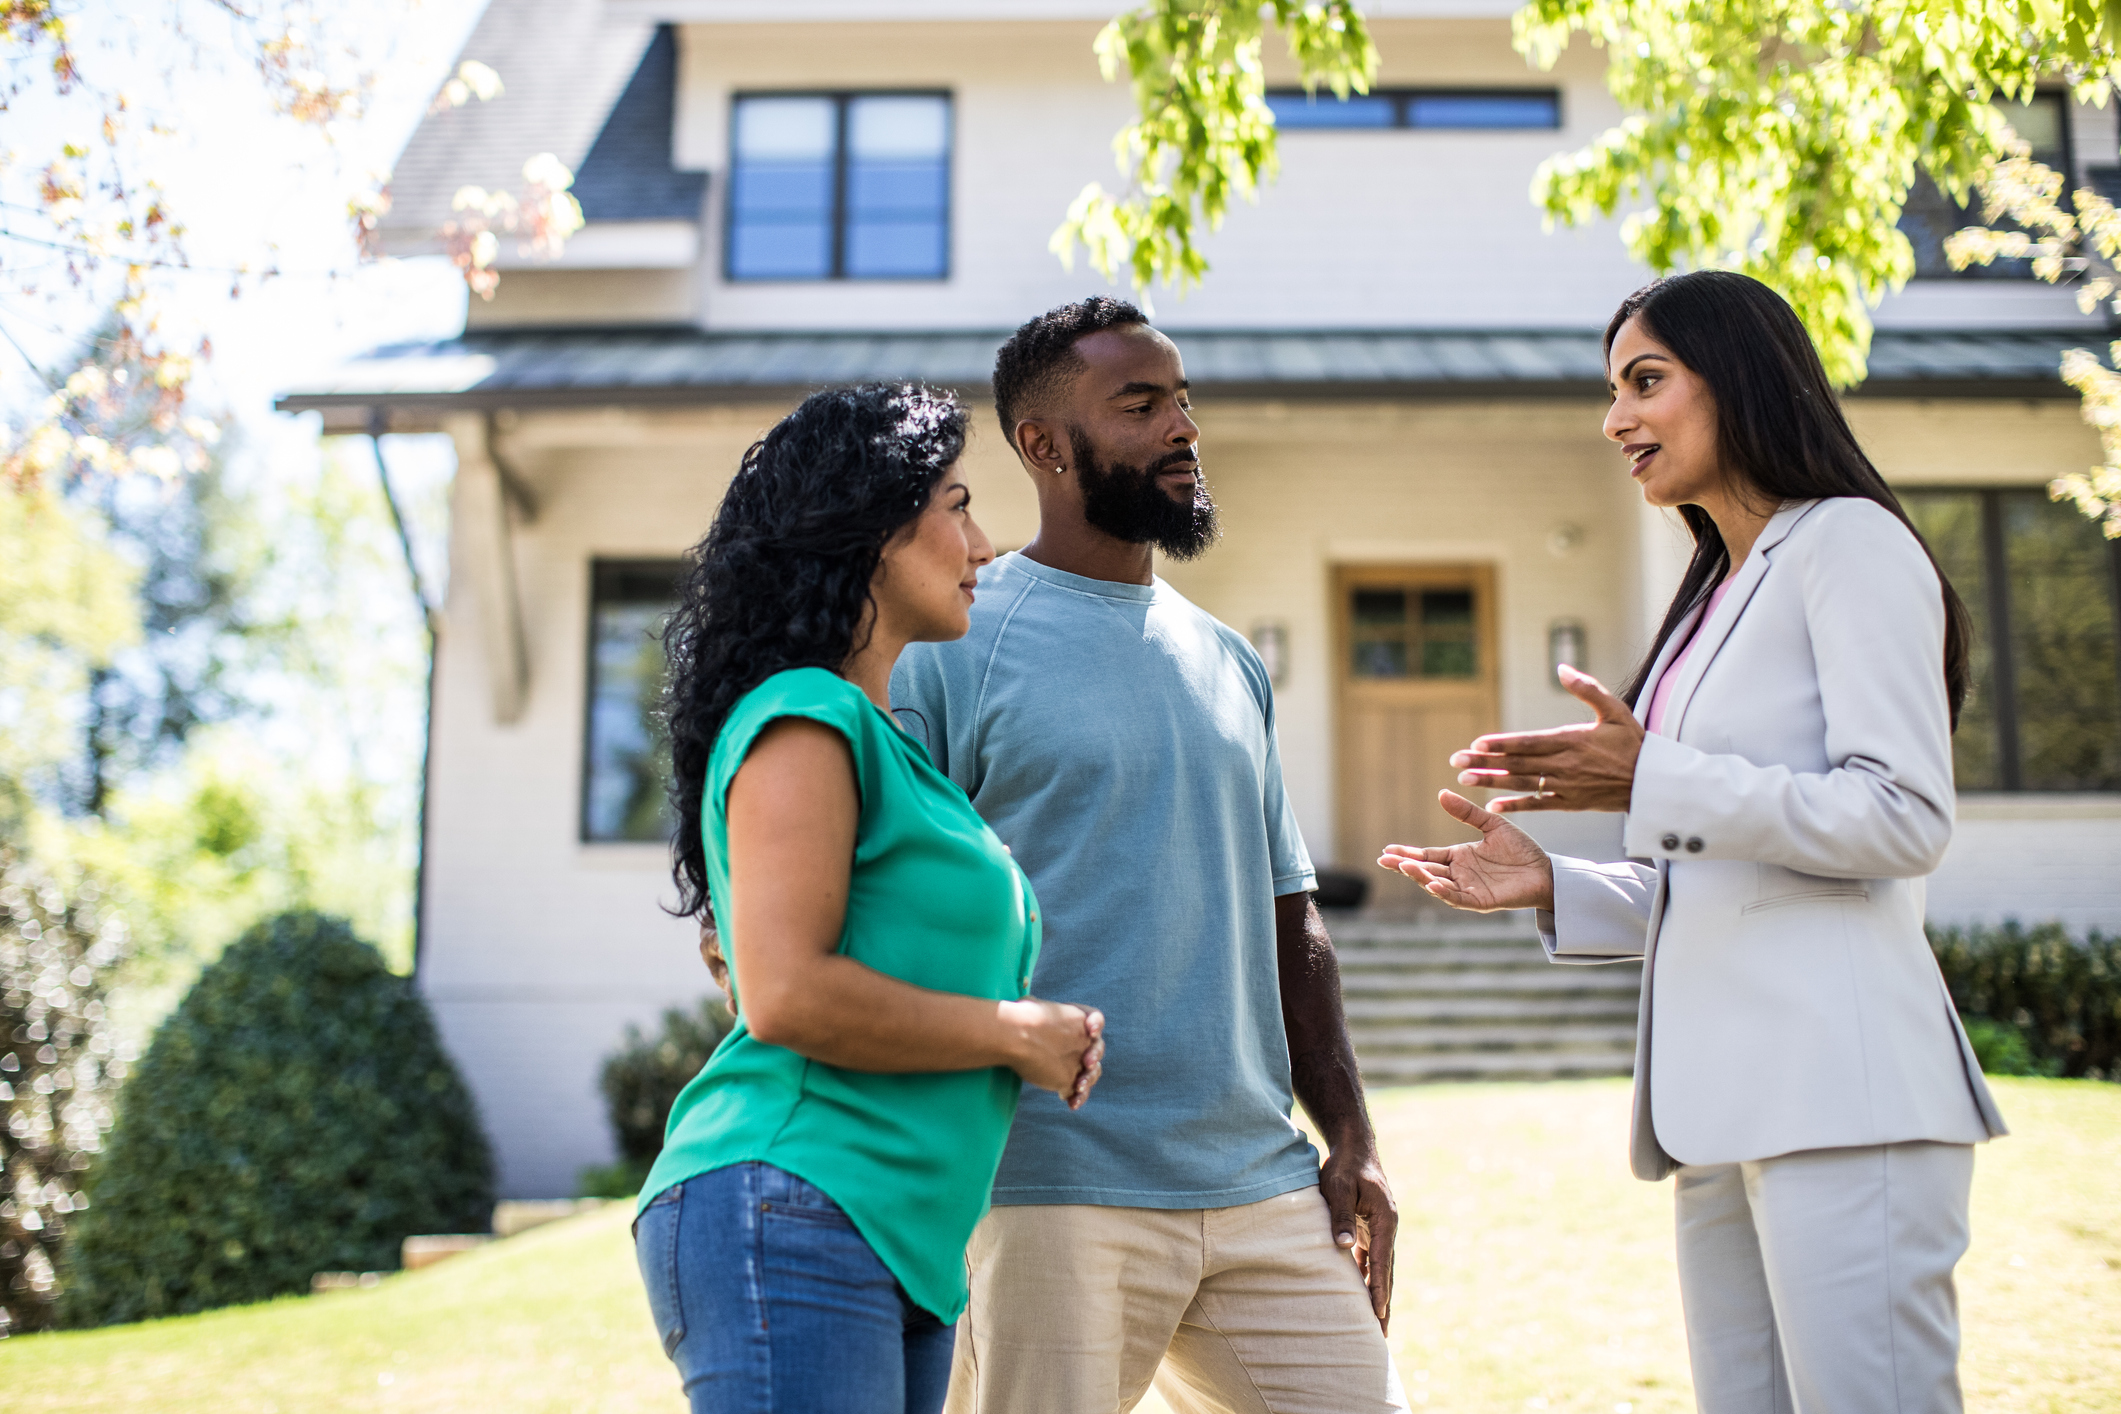 A couple discussing a real estate property with an agent prior to purchasing the property.